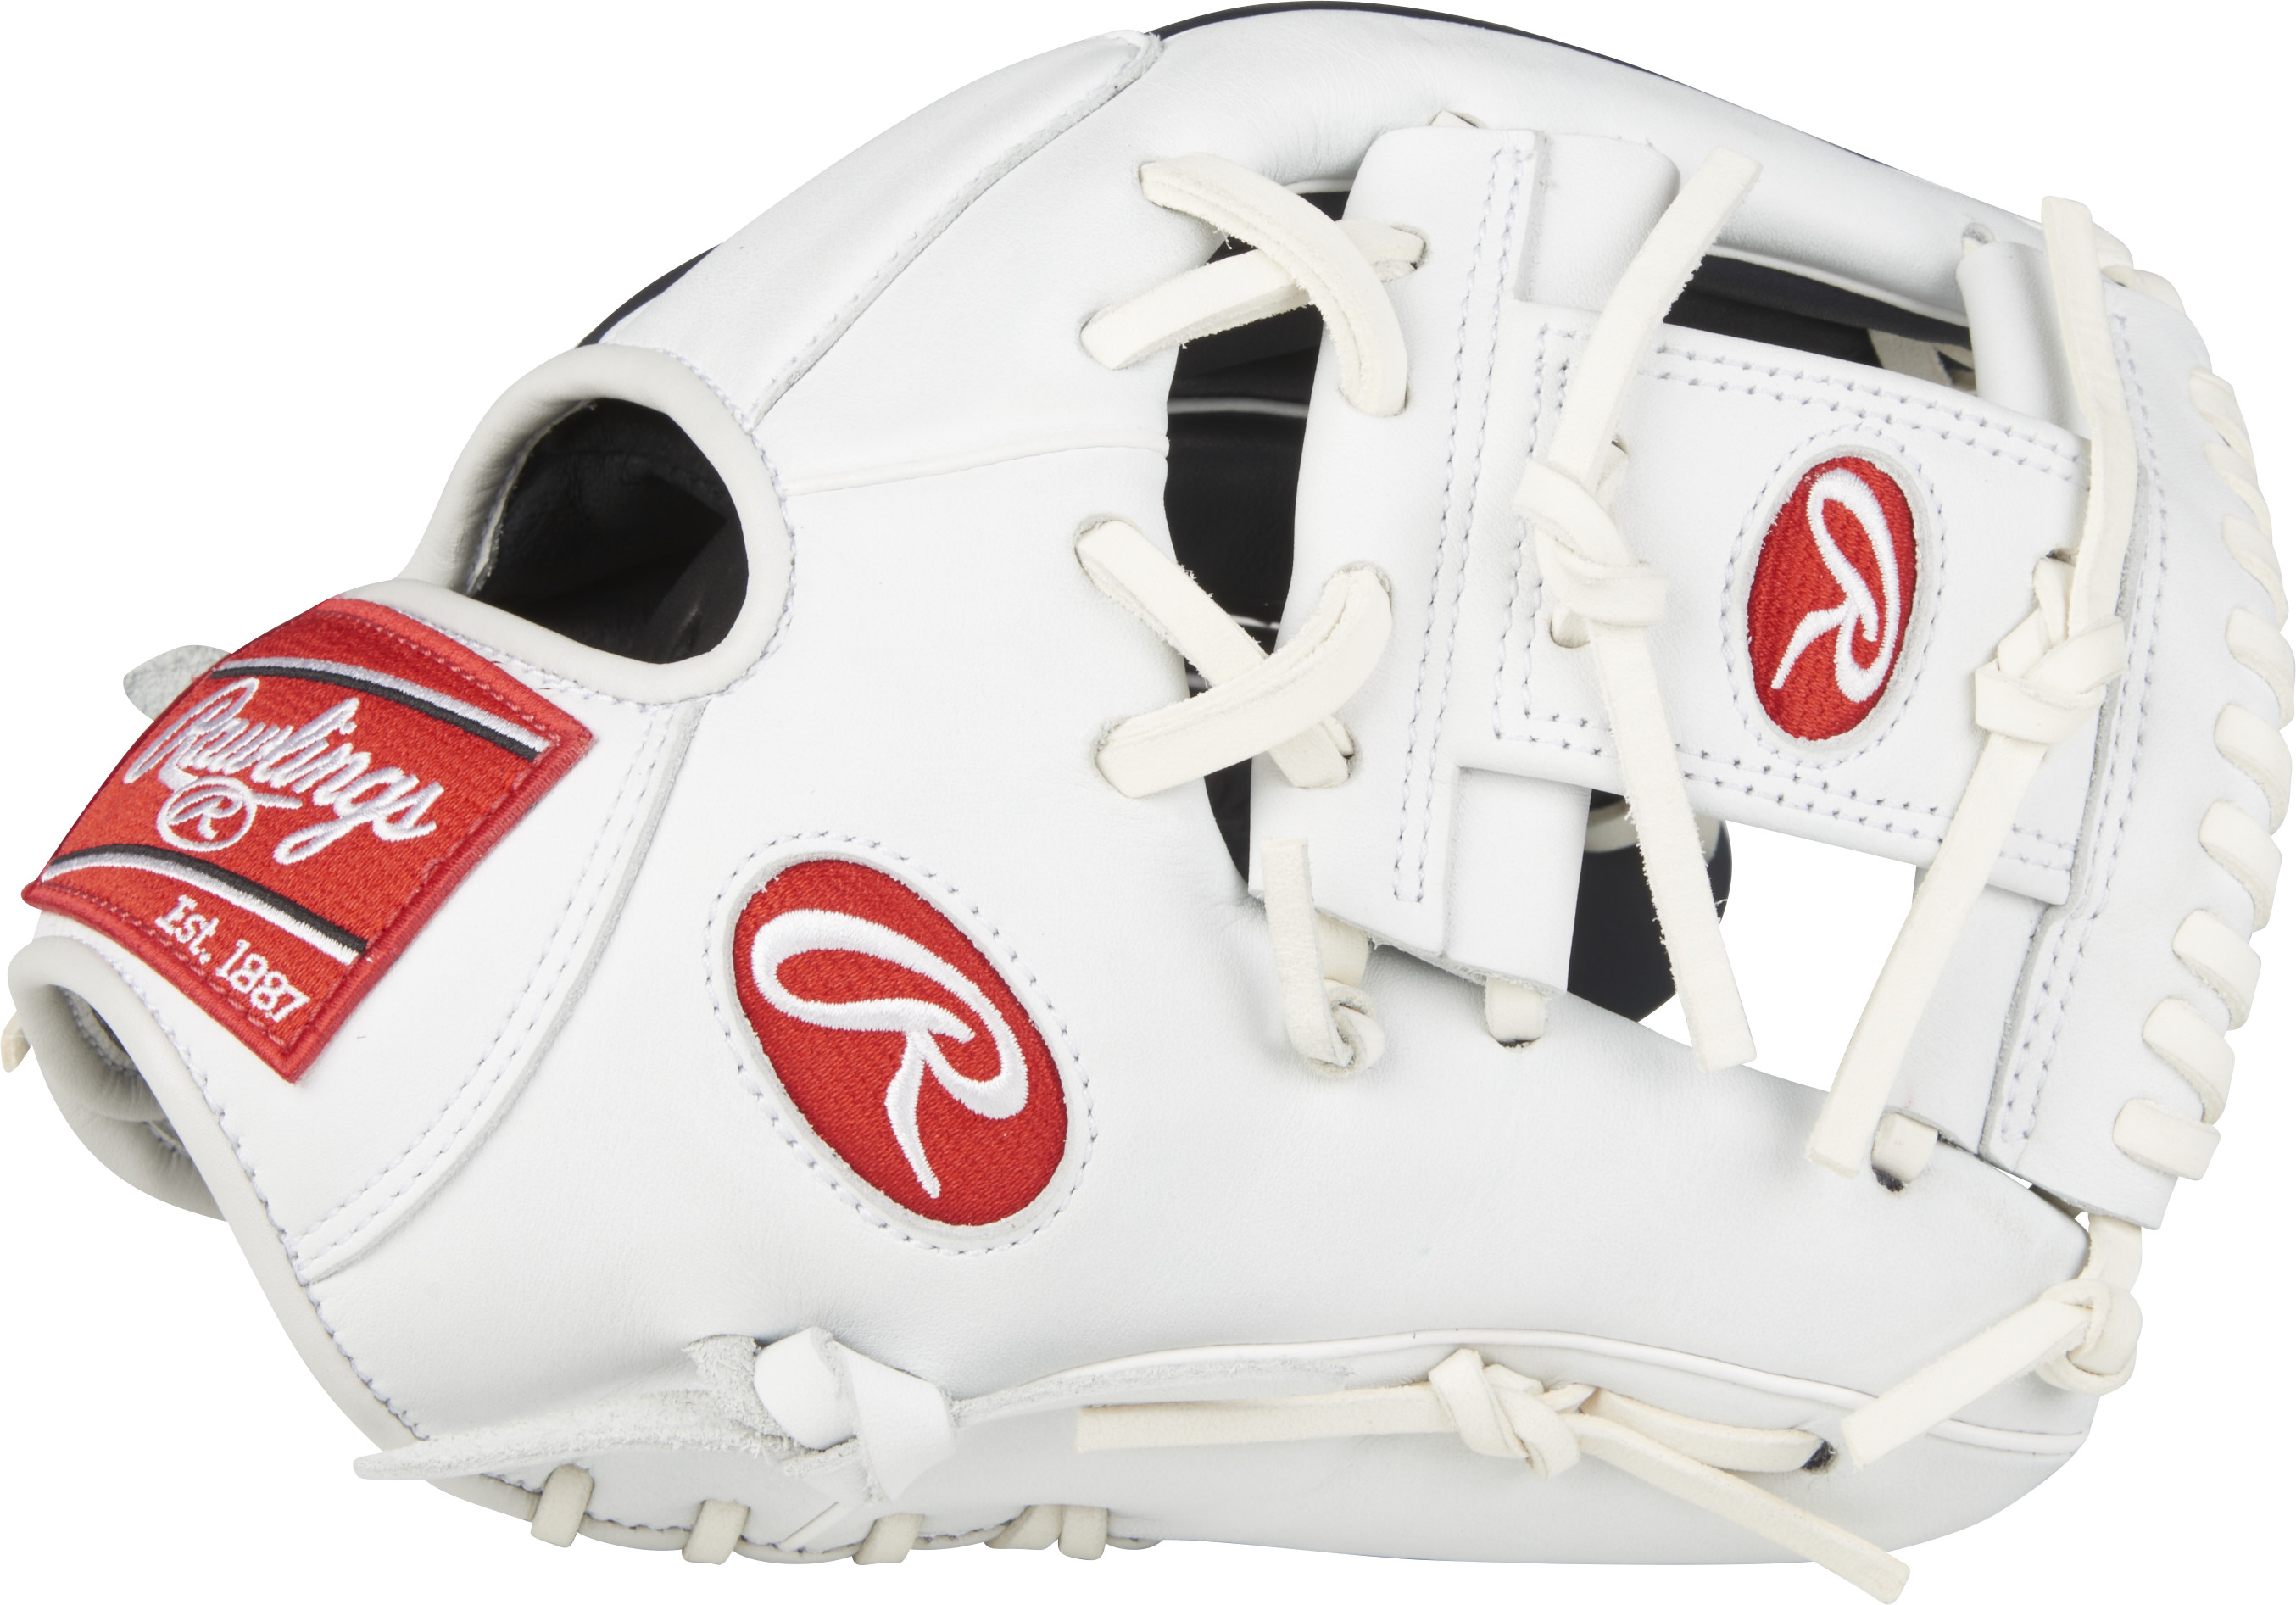 http://www.bestbatdeals.com/images/gloves/rawlings/GXLE204-2NW-3.jpg